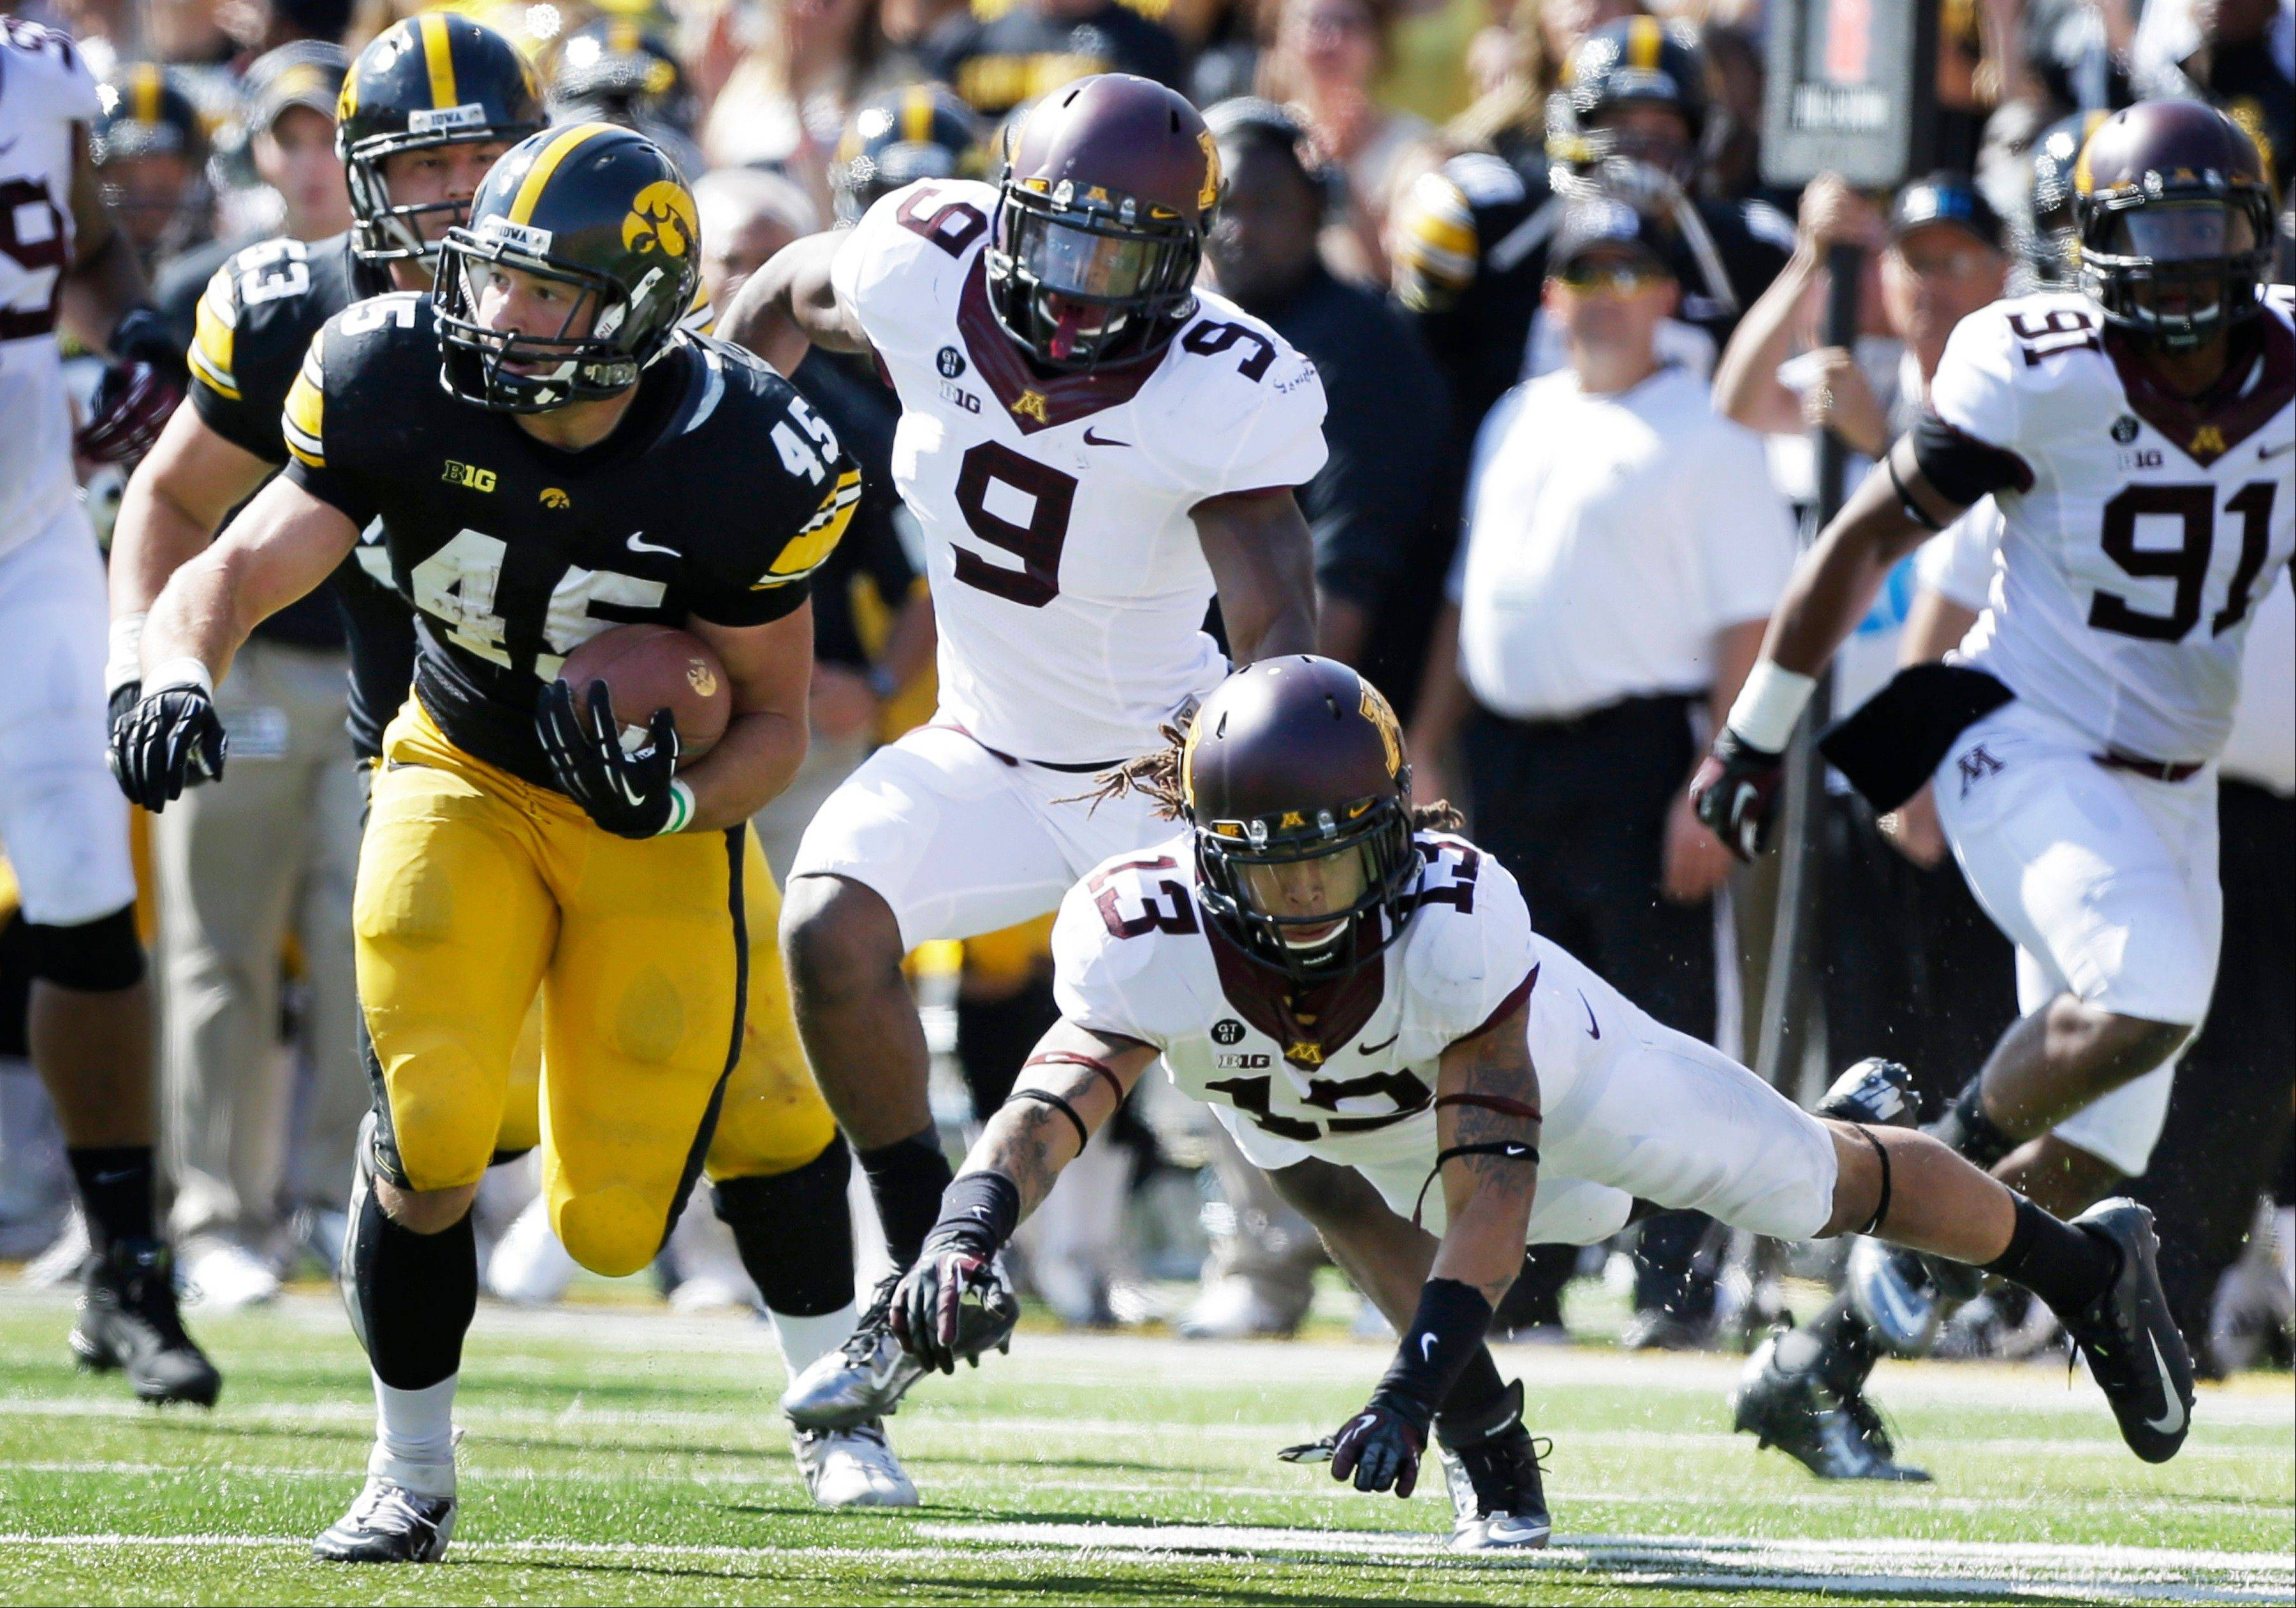 Iowa fullback Mark Weisman runs from Minnesota defenders James Manuel (9) and Derrick Wells (13) Saturday during the first half in Iowa City, Iowa.